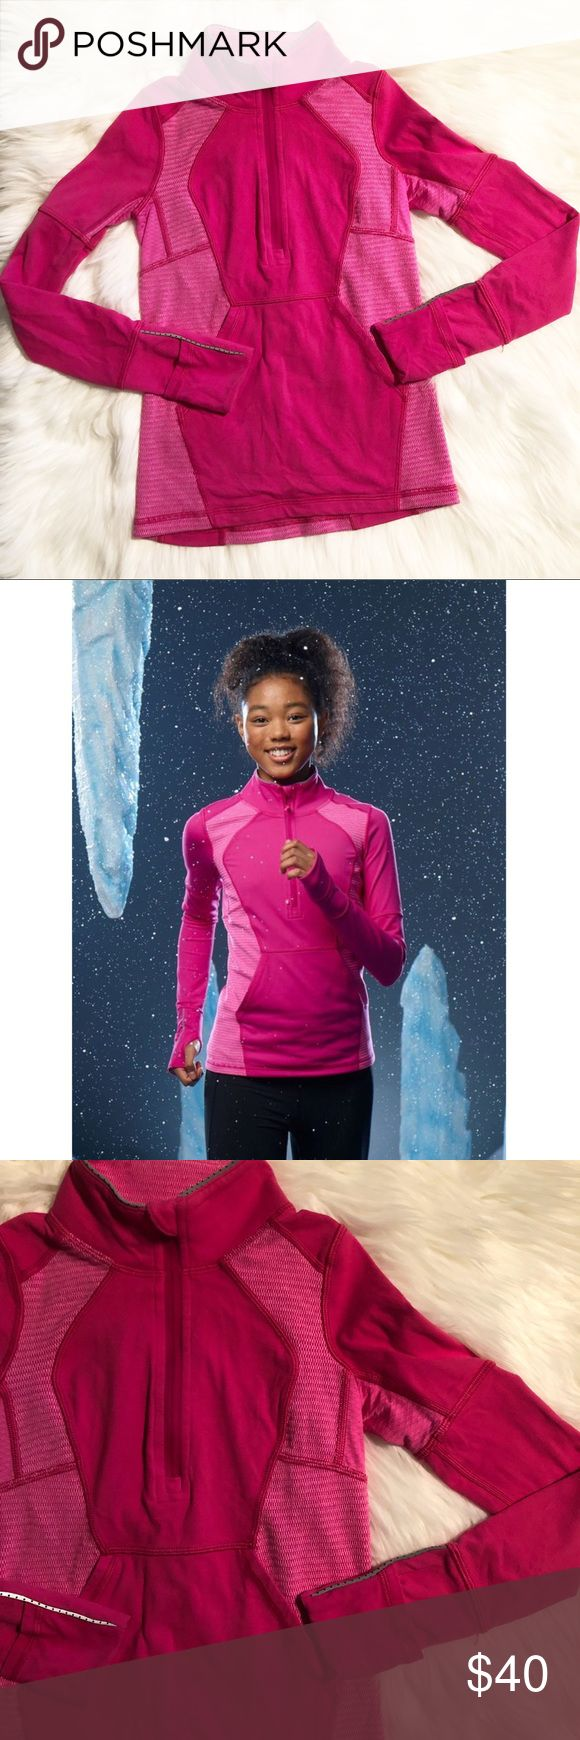 Ivviva Summit Sprinter Zip Pulover Ivviva (Lululemons kids line) girls size 6 Summit Sprinter Zip Pullover. Has thumb holes. Small snag on bottom front. ✨ Feel free to ask any questions. No trades or outside transactions. Offers welcomed. Bundle to save more! Ivivva Jackets & Coats